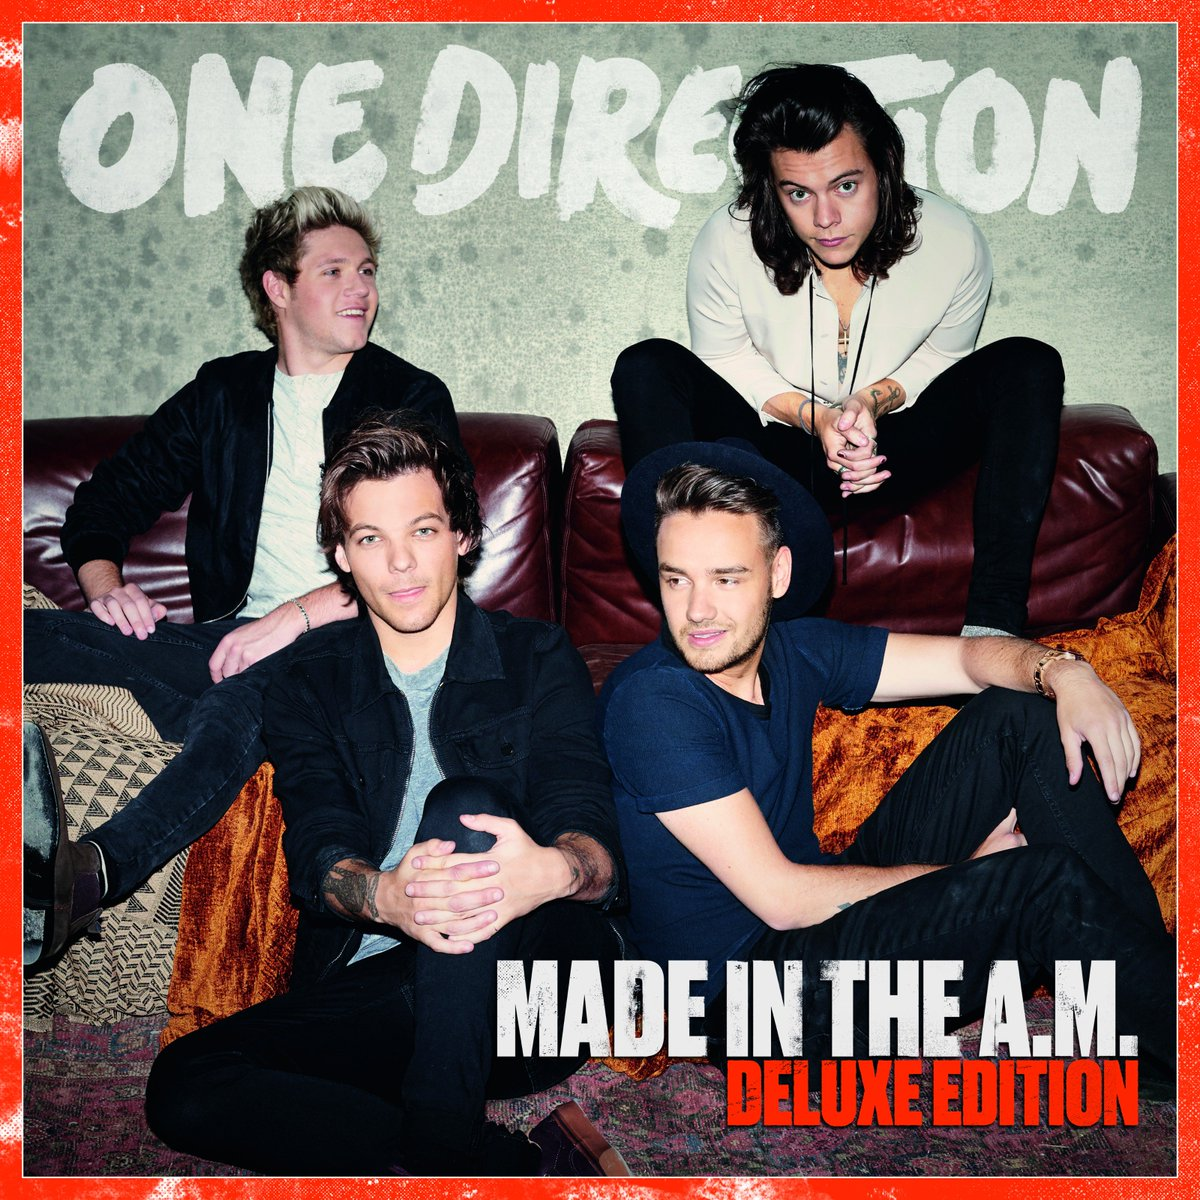 It's finally here! Get @OneDirection's 5th album #MadeInTheAM now! https://t.co/b4grQtus1Q https://t.co/wmNNeA3D5R